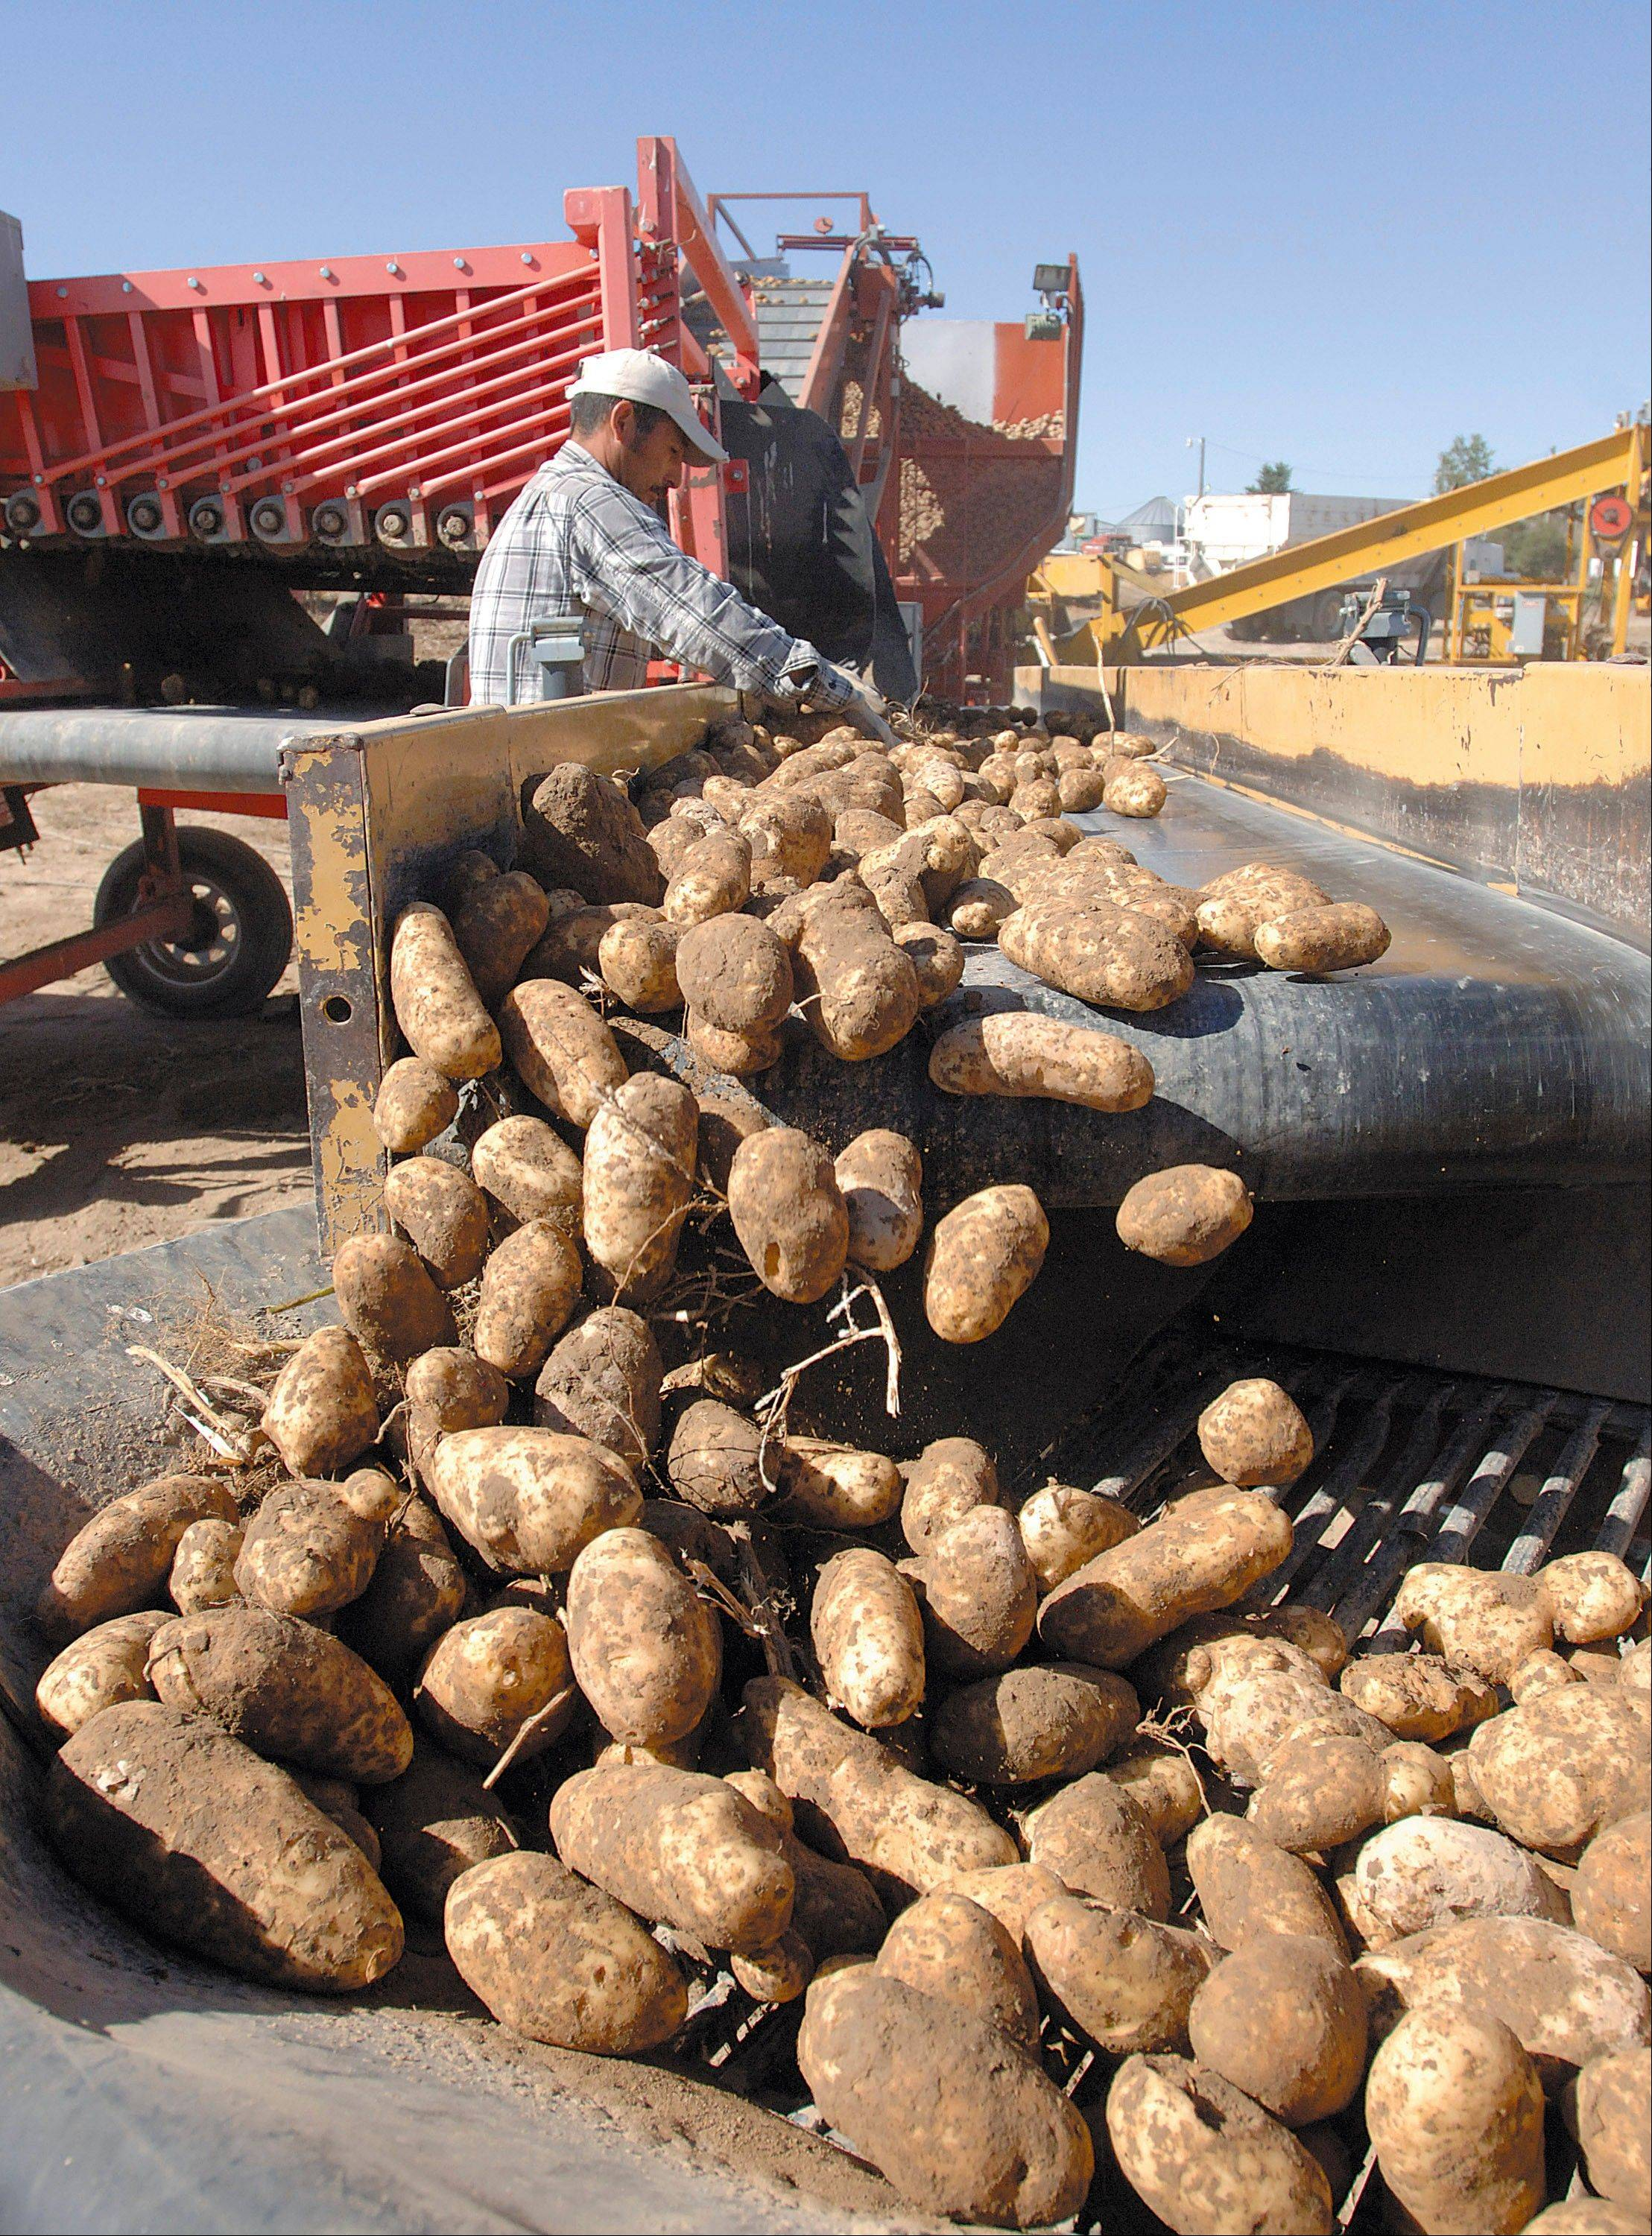 Potatoes are harvested at farm west of Idaho Falls , Idaho, in this September 2010 file photo.